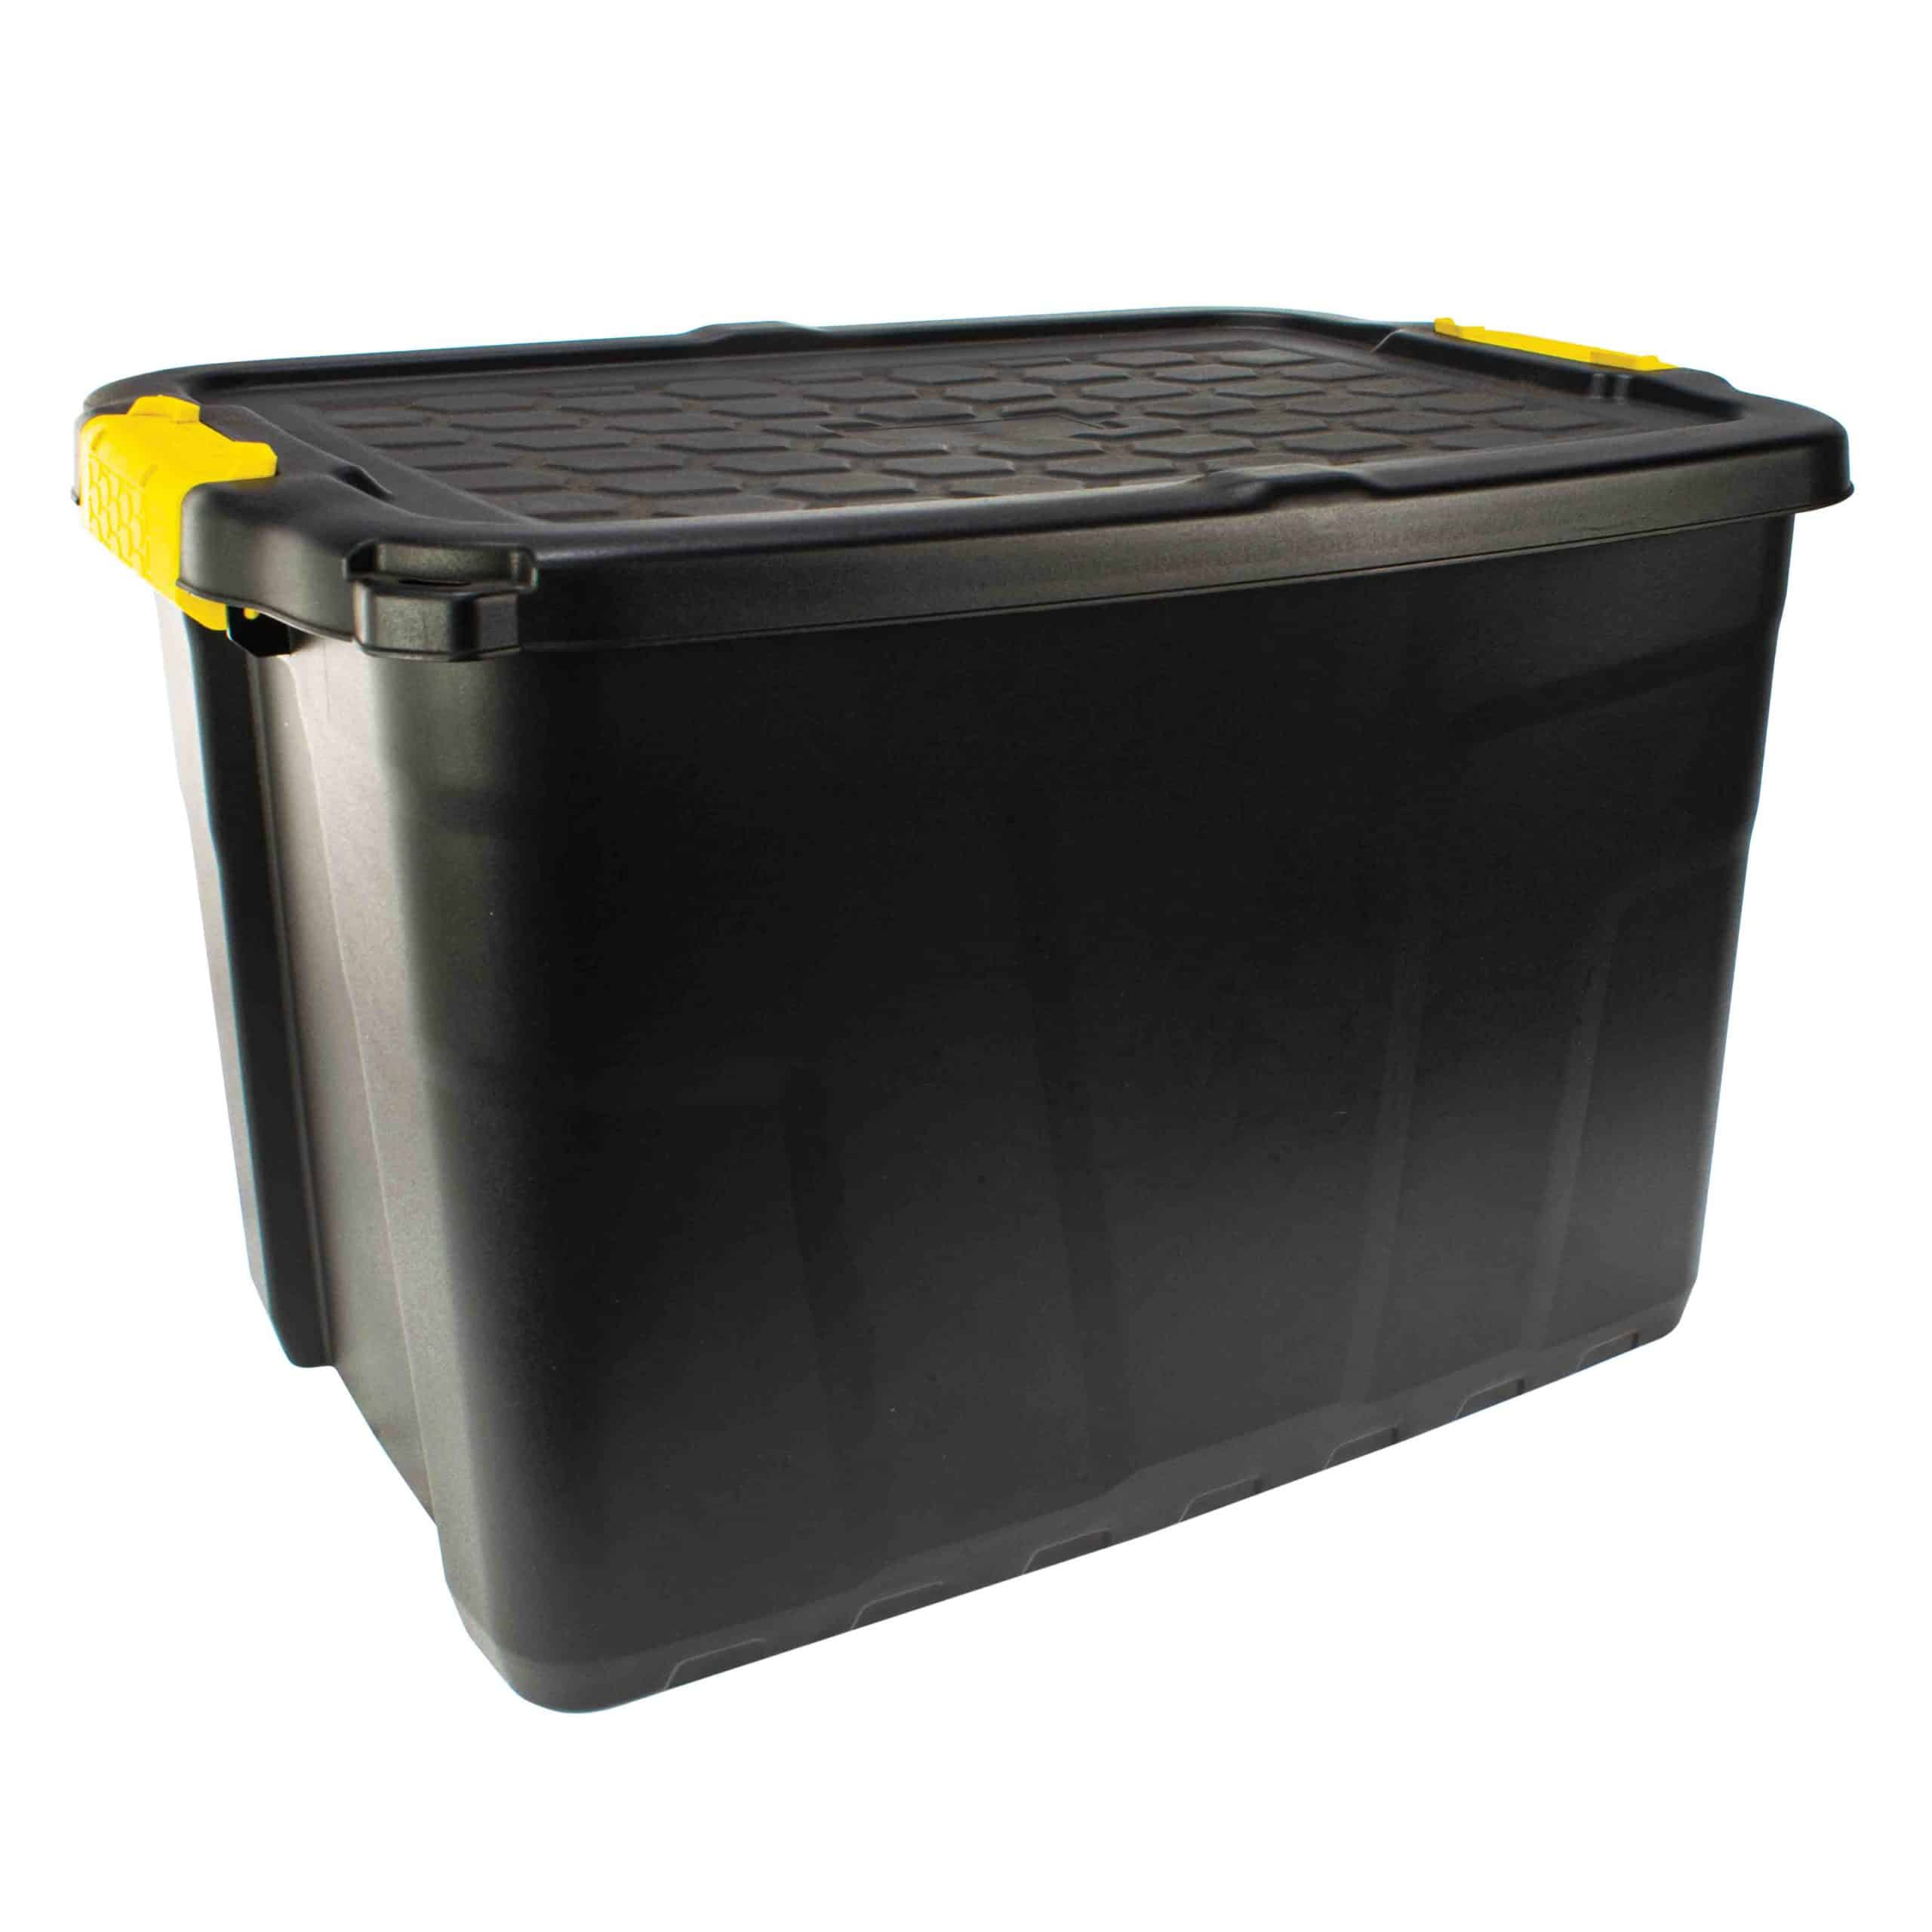 60 Litre Heavy Duty Storage Containers